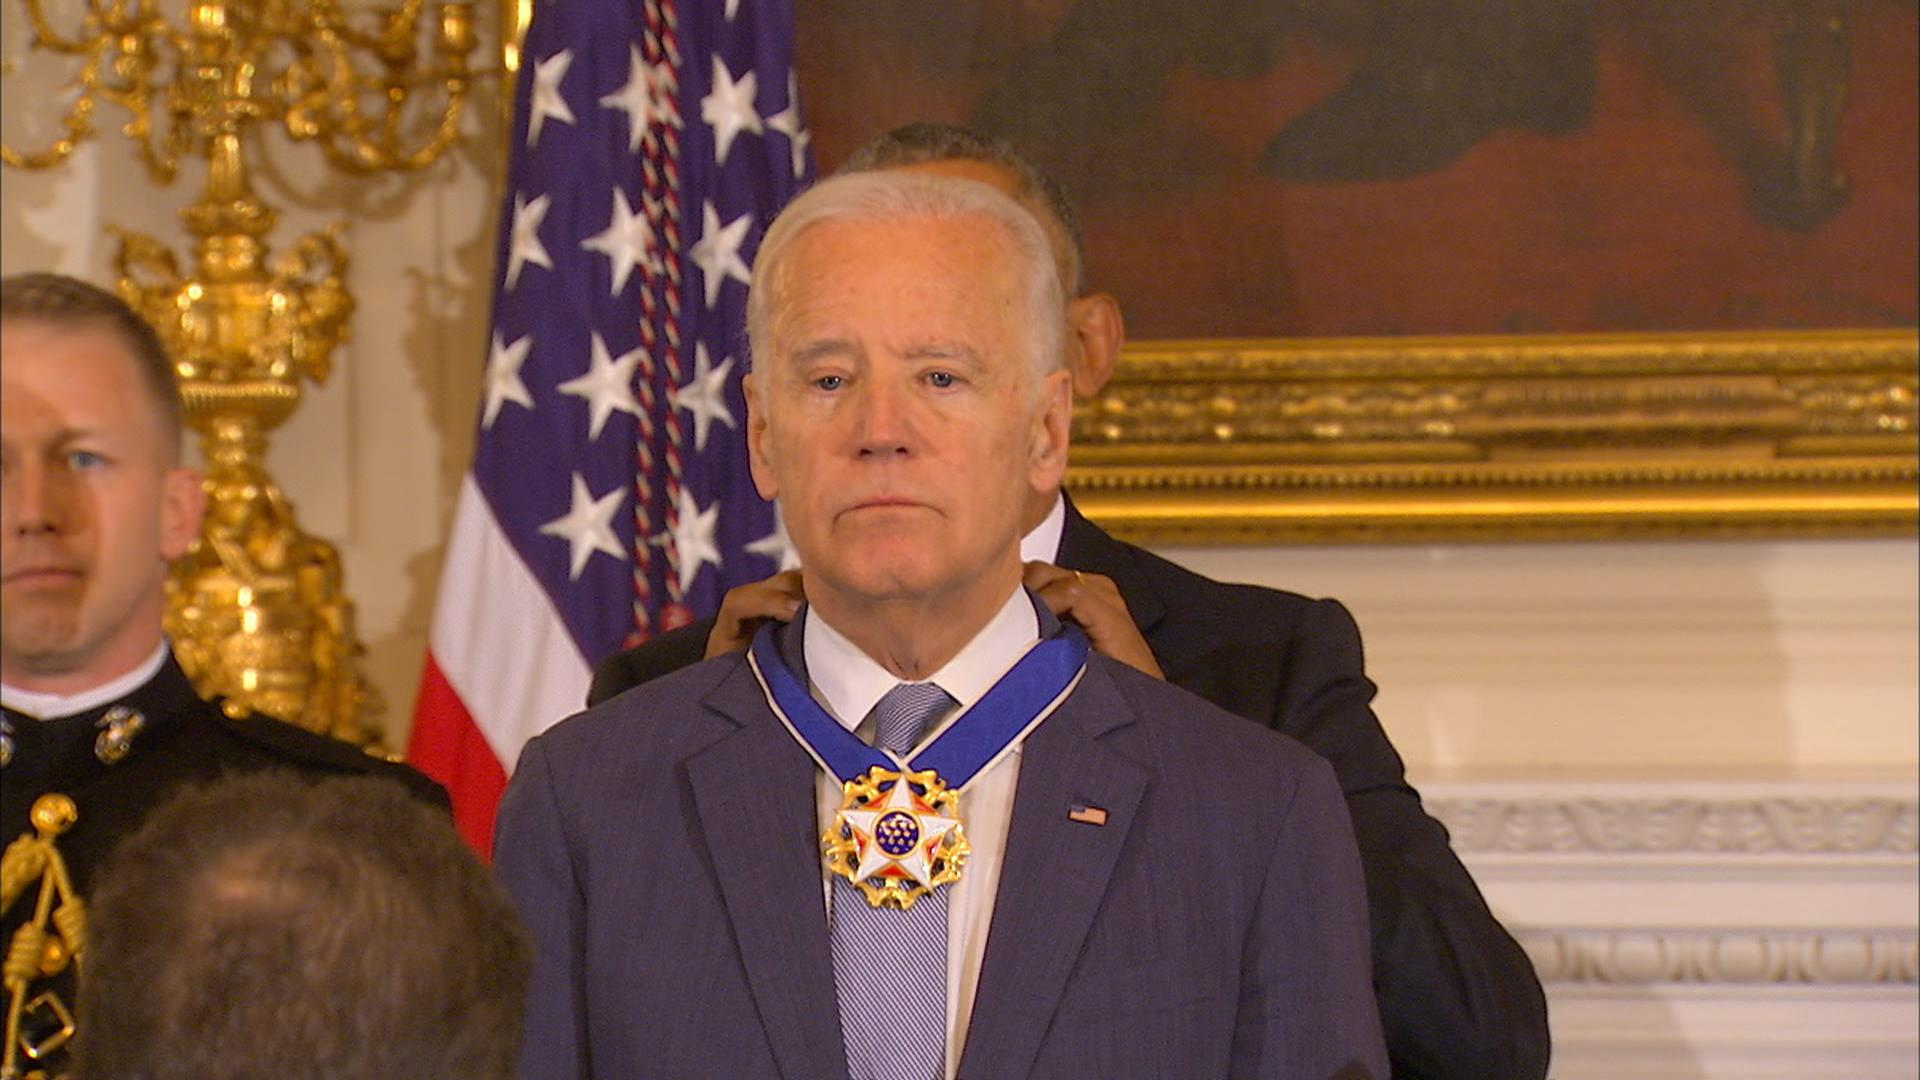 f_bidenmedal_170112 obama awards presidential medal of freedom to biden nbc news